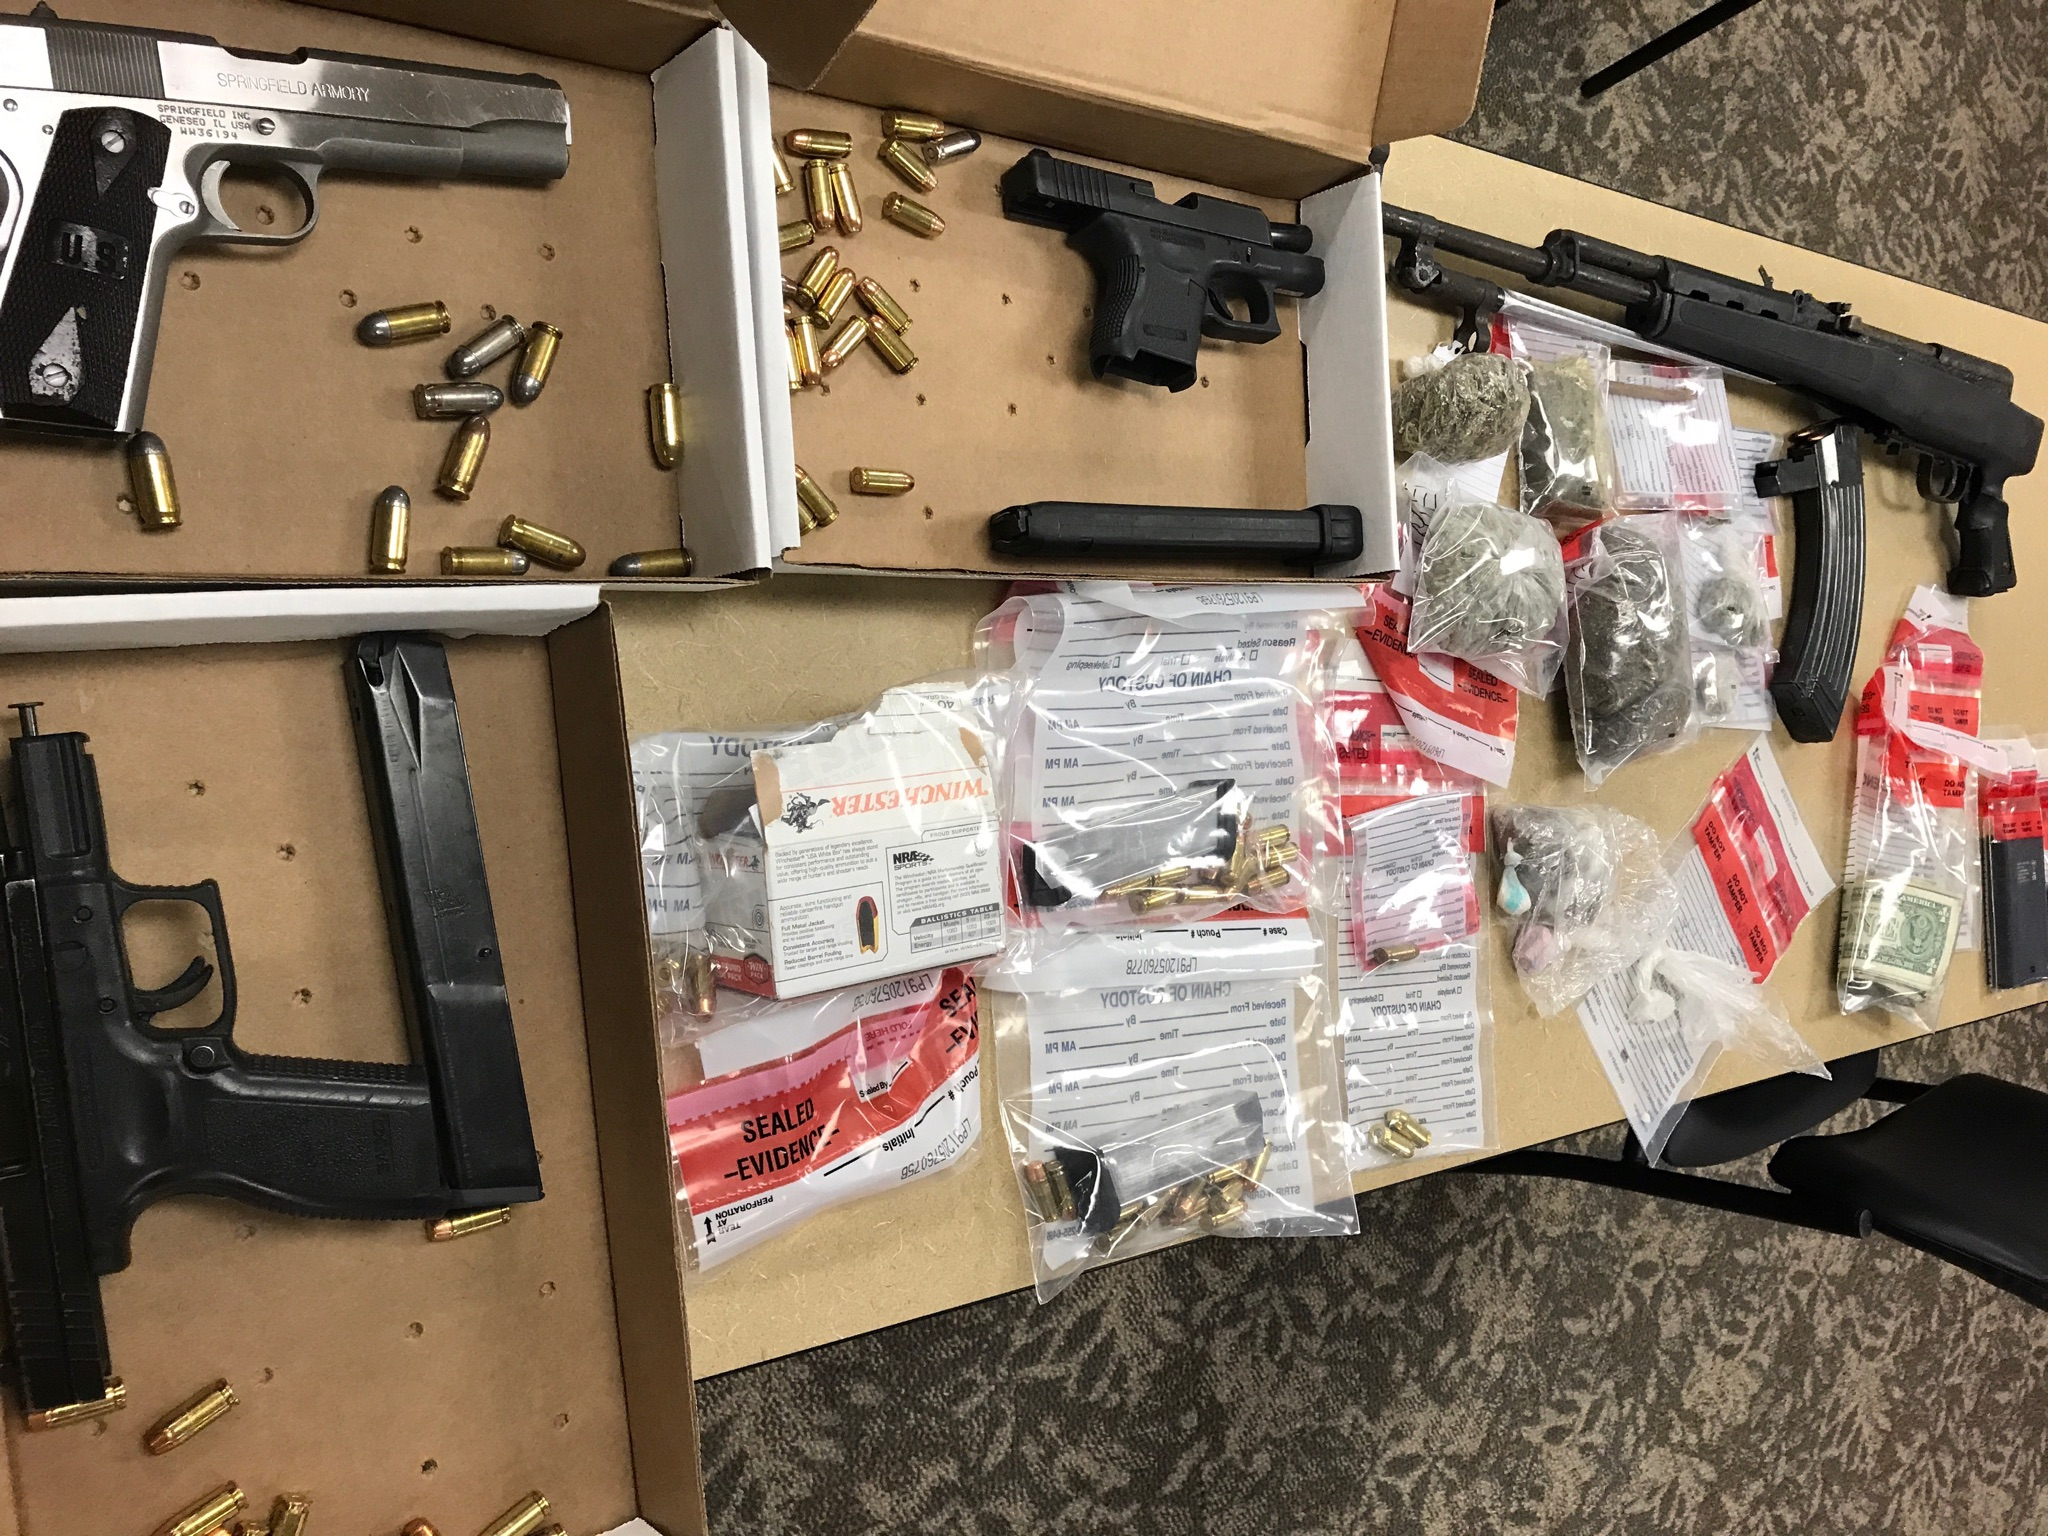 This photo of items taken from the home was provided by the North Charleston Police Department.